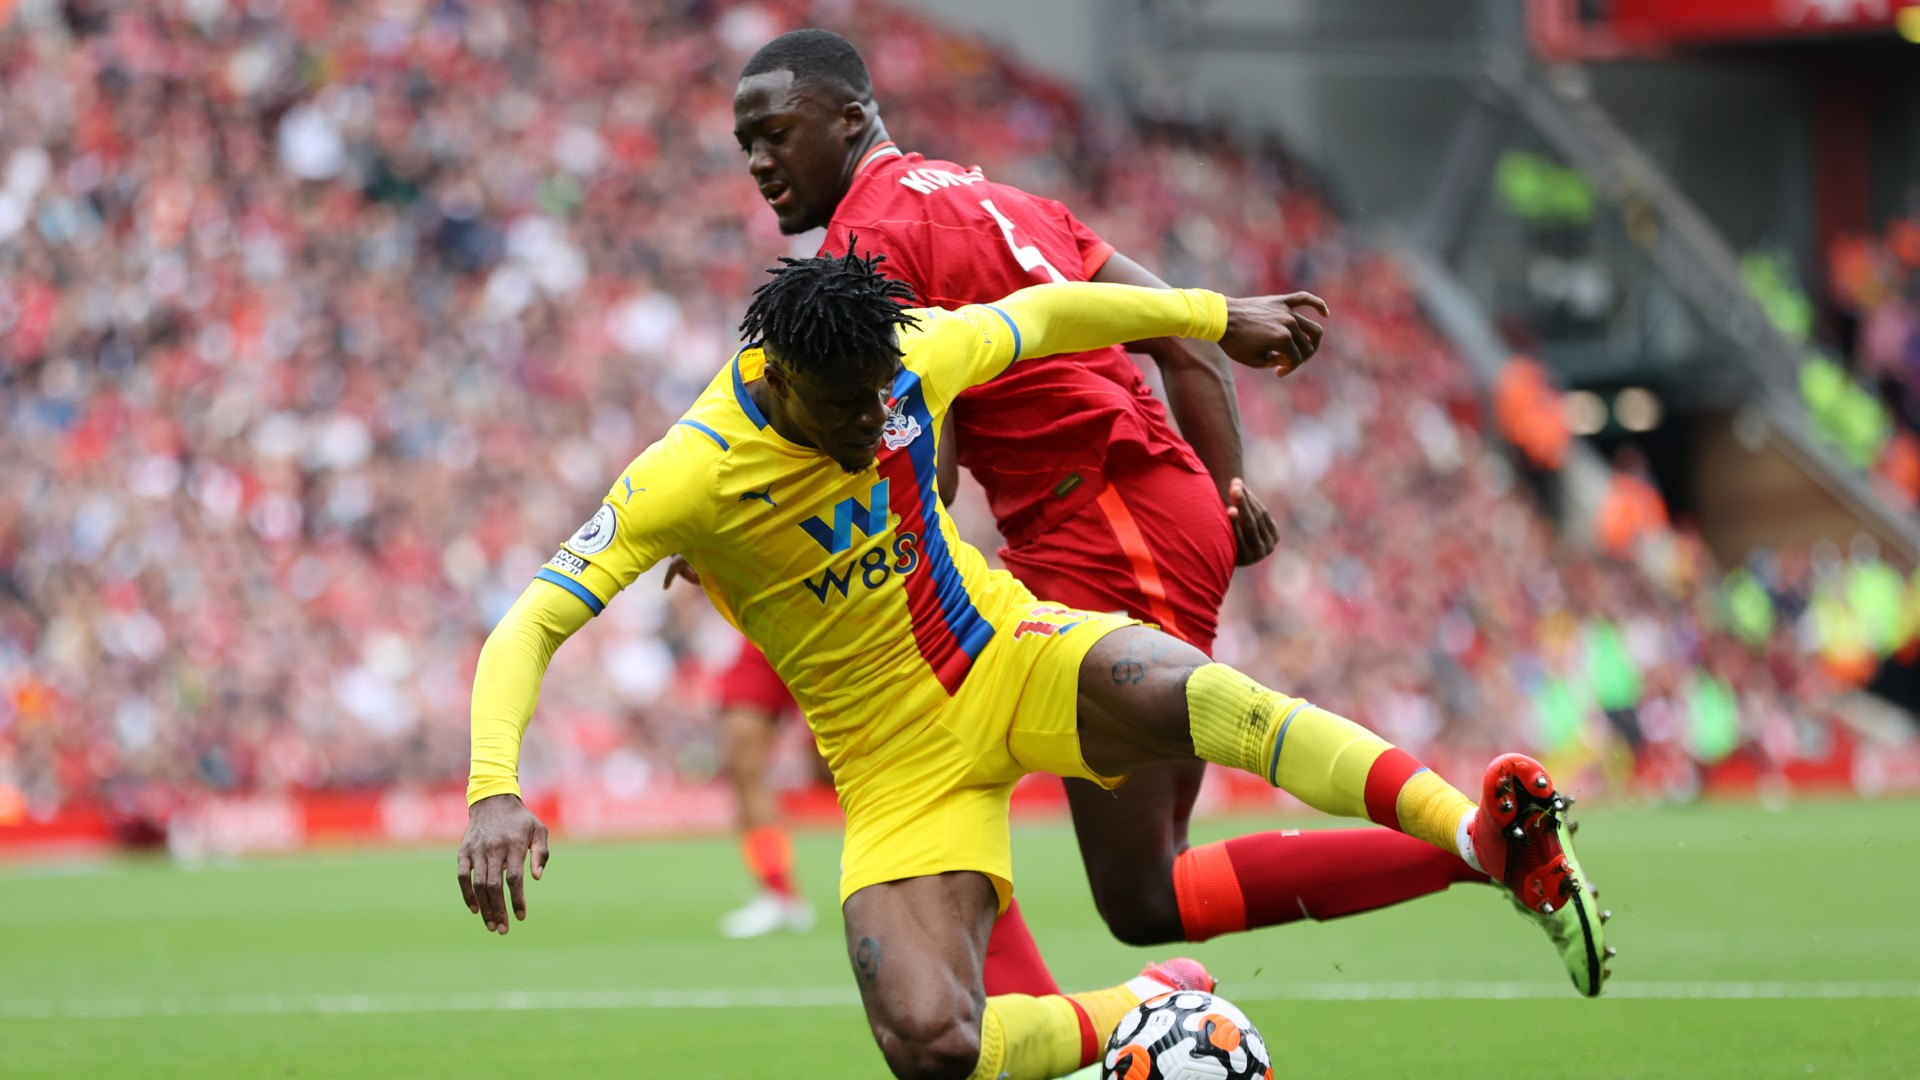 'He did really well against Zaha and Ayew' – Liverpool boss Klopp raves about Konate